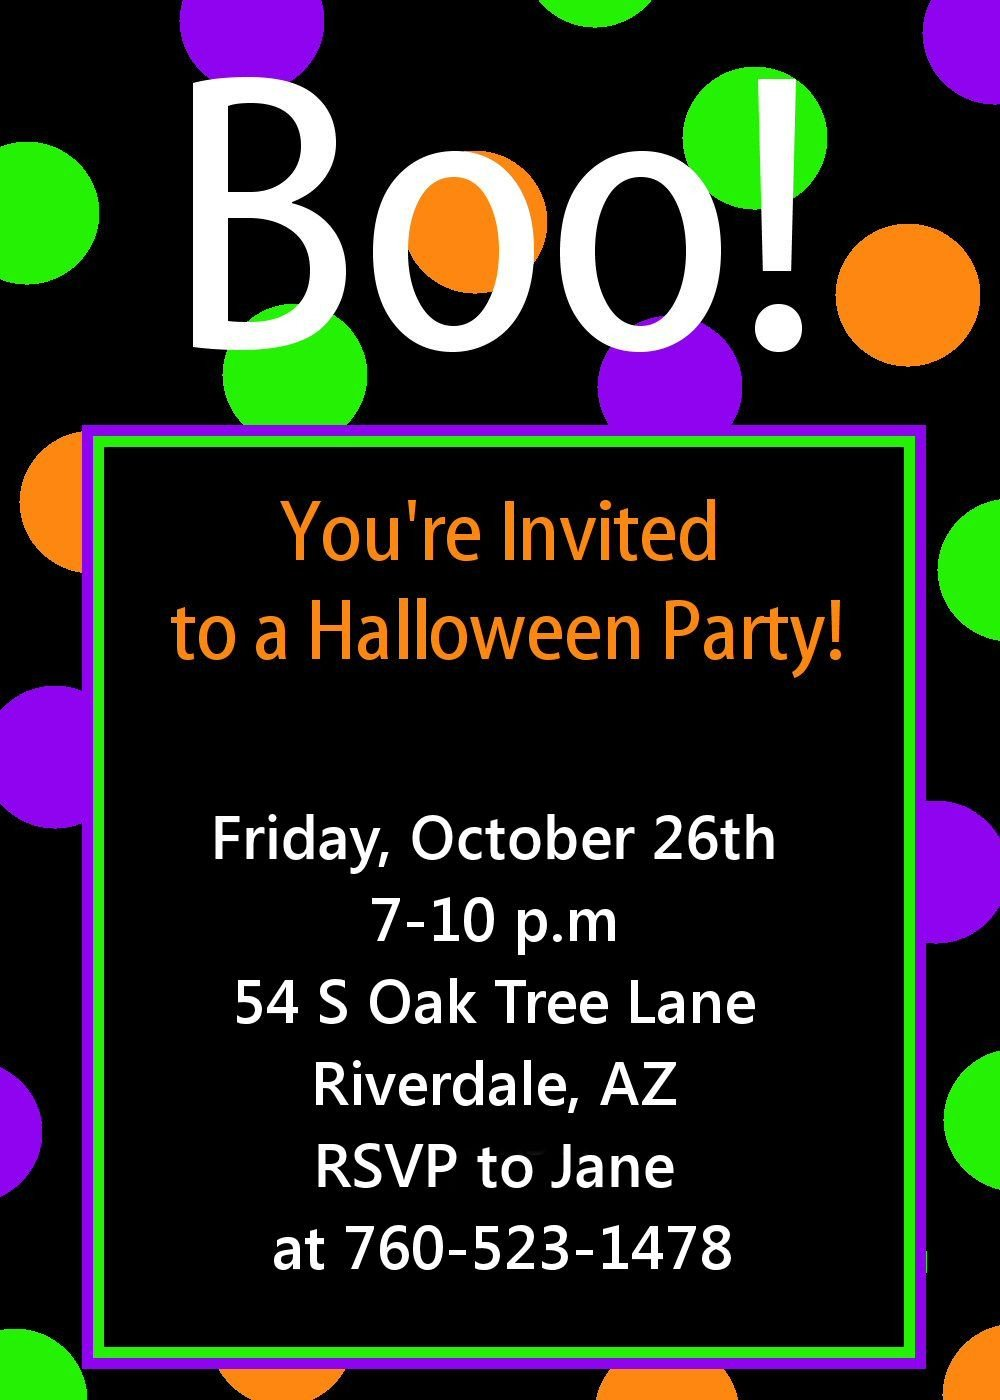 Free Halloween Invites Templates Free Printable Halloween Party Invitations Templates